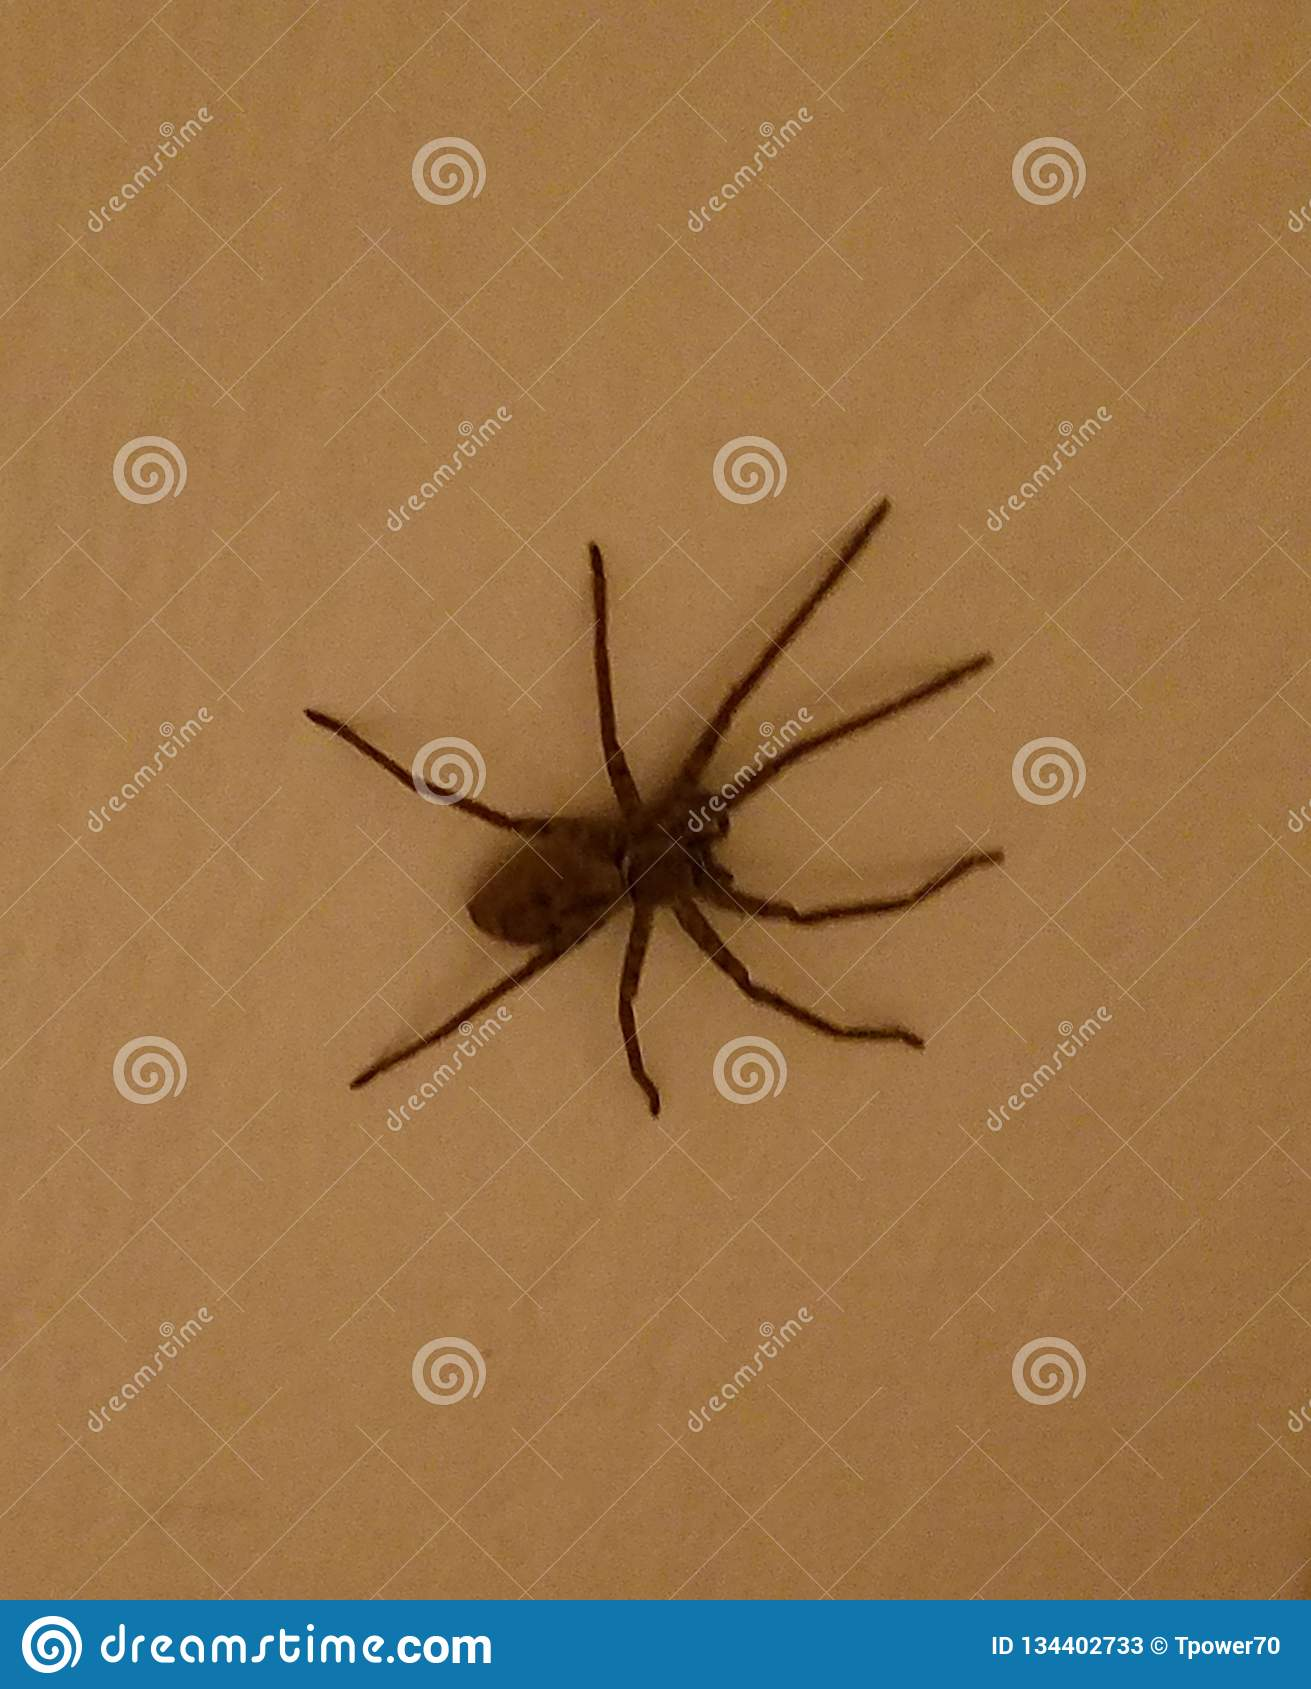 Large Hairy Cane Spider Resting On A Wall Stock Image Image Of